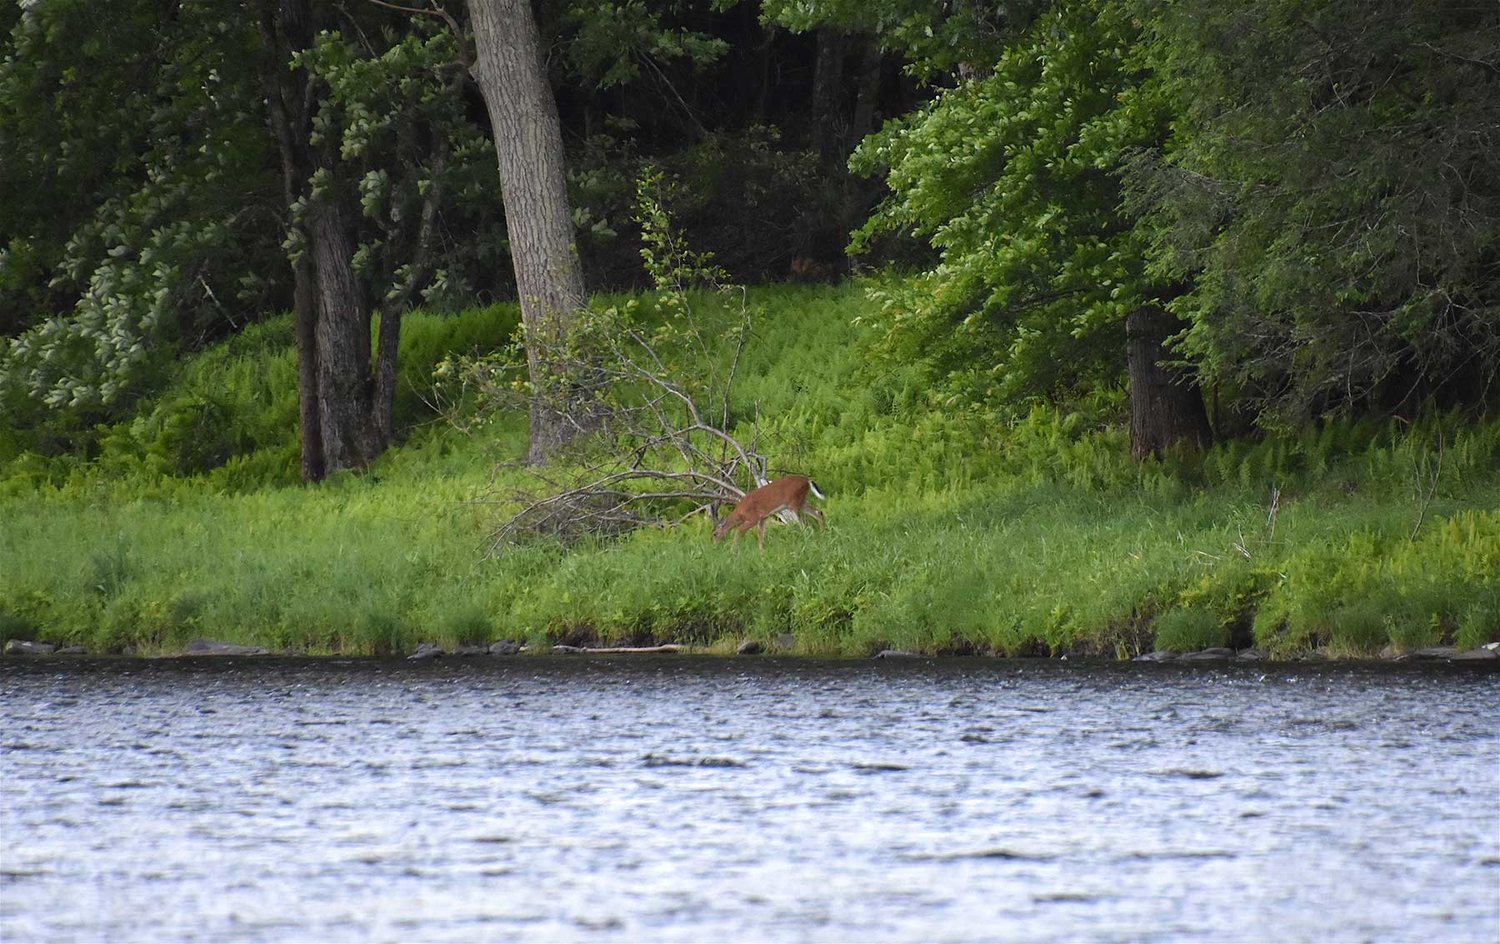 A white-tailed deer peacefully grazes along the river's edge.